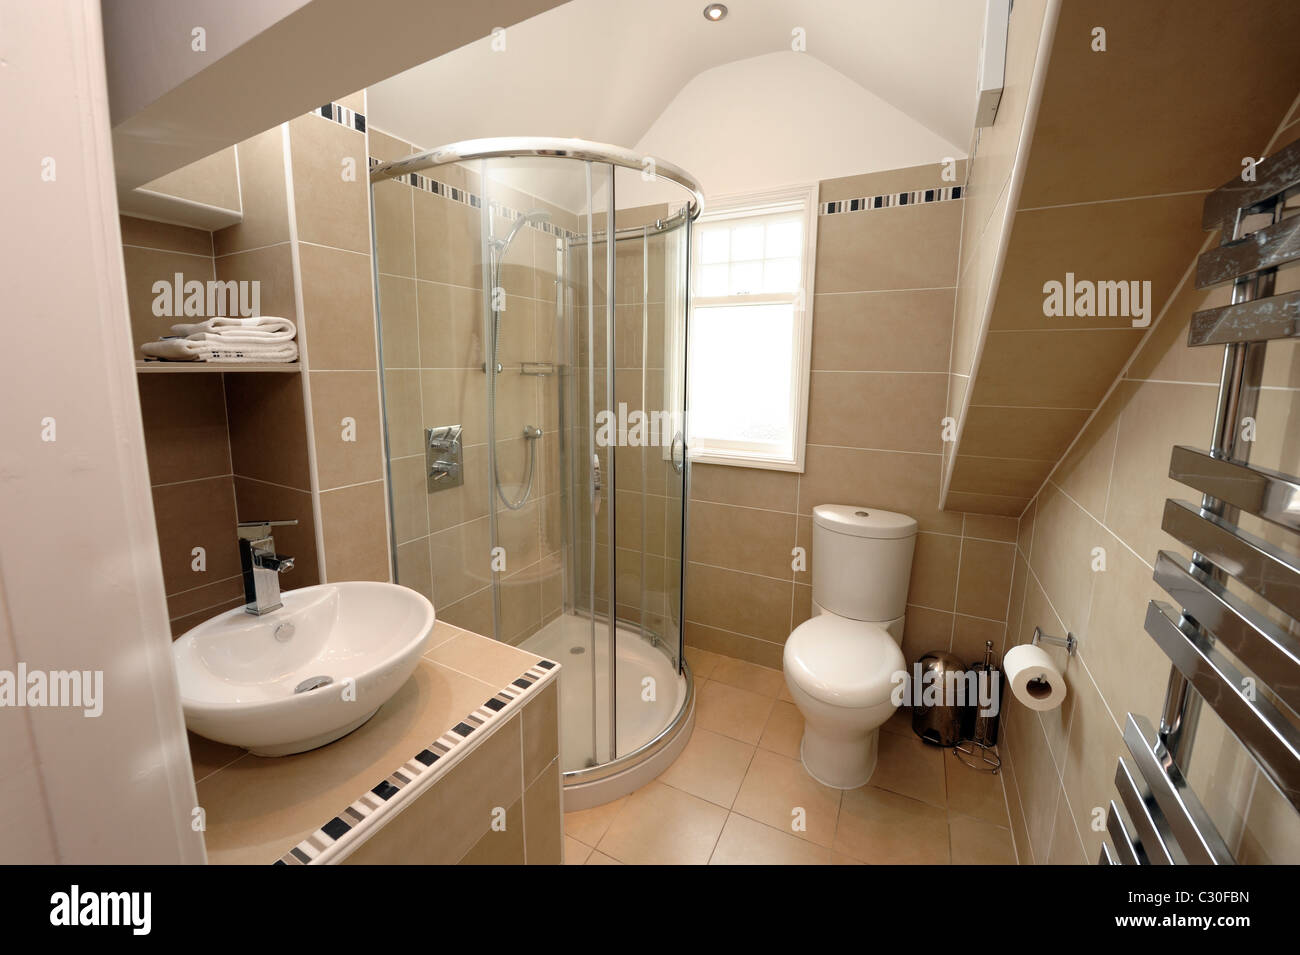 Modern loft conversion shower room - Stock Image